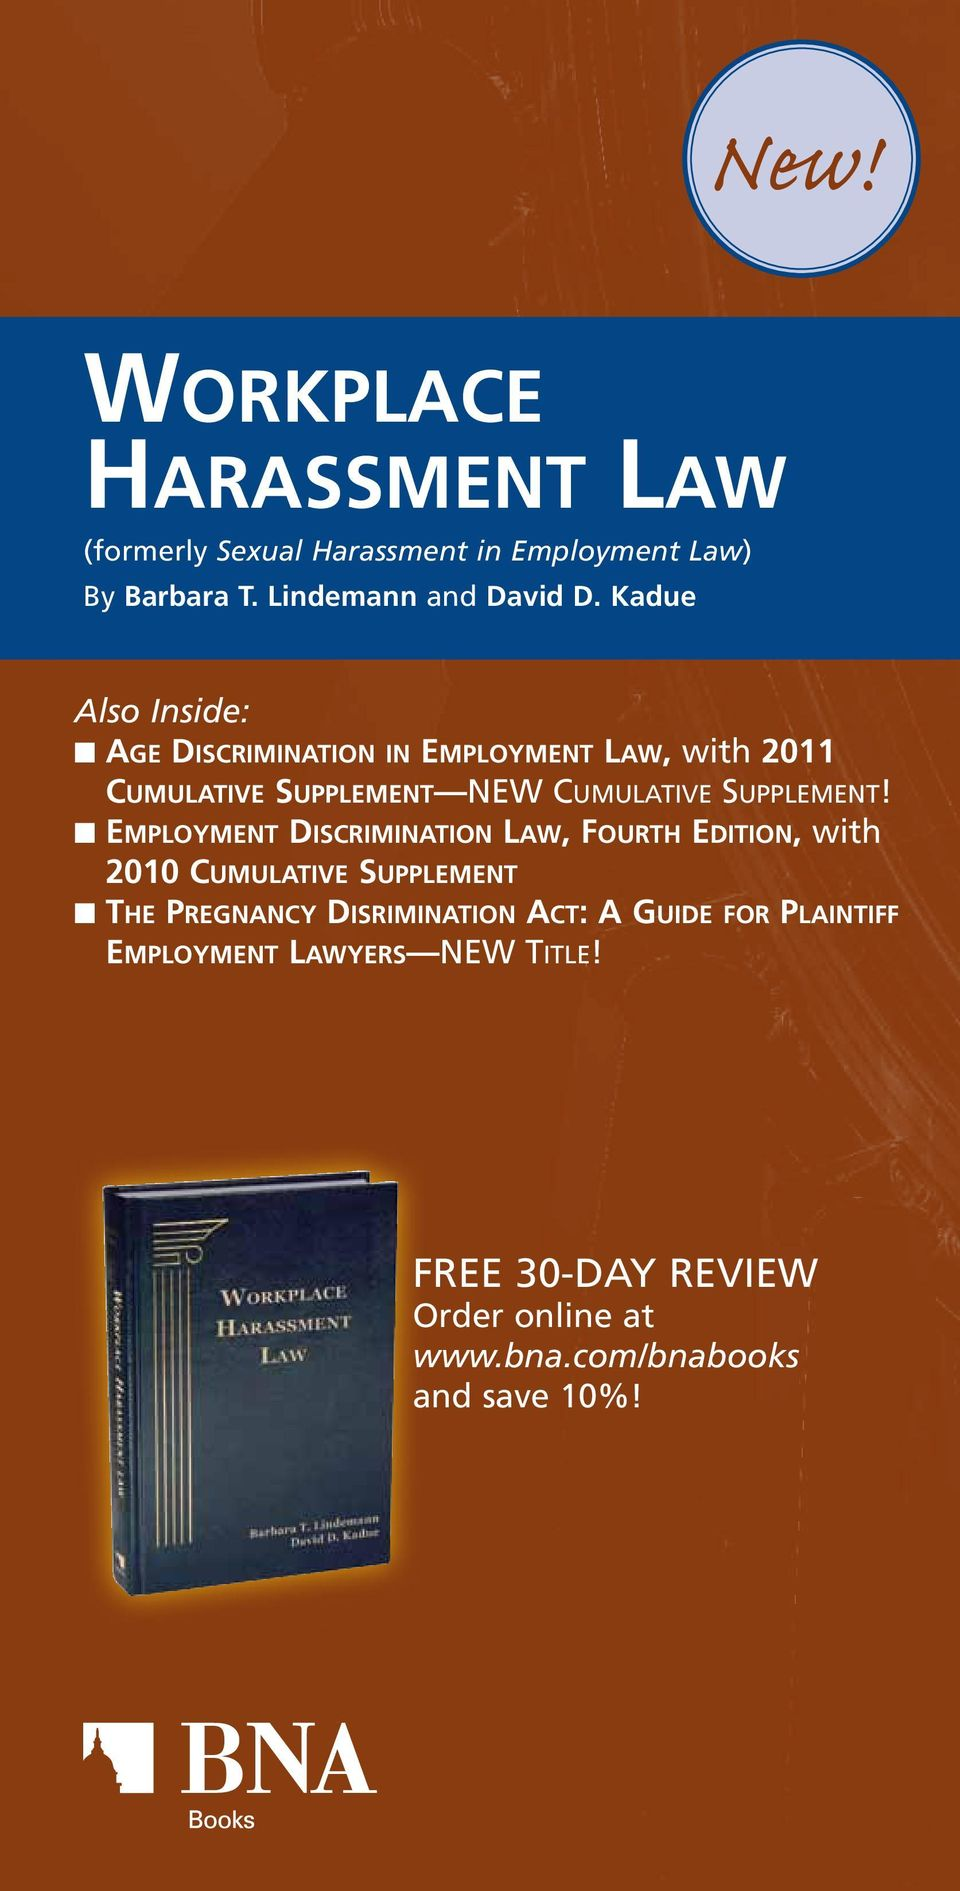 ne mployment Discrimination Law, Fourth Edition, with 2010 Cumulative Supplement nt he Pregnancy Disrimination Act: A